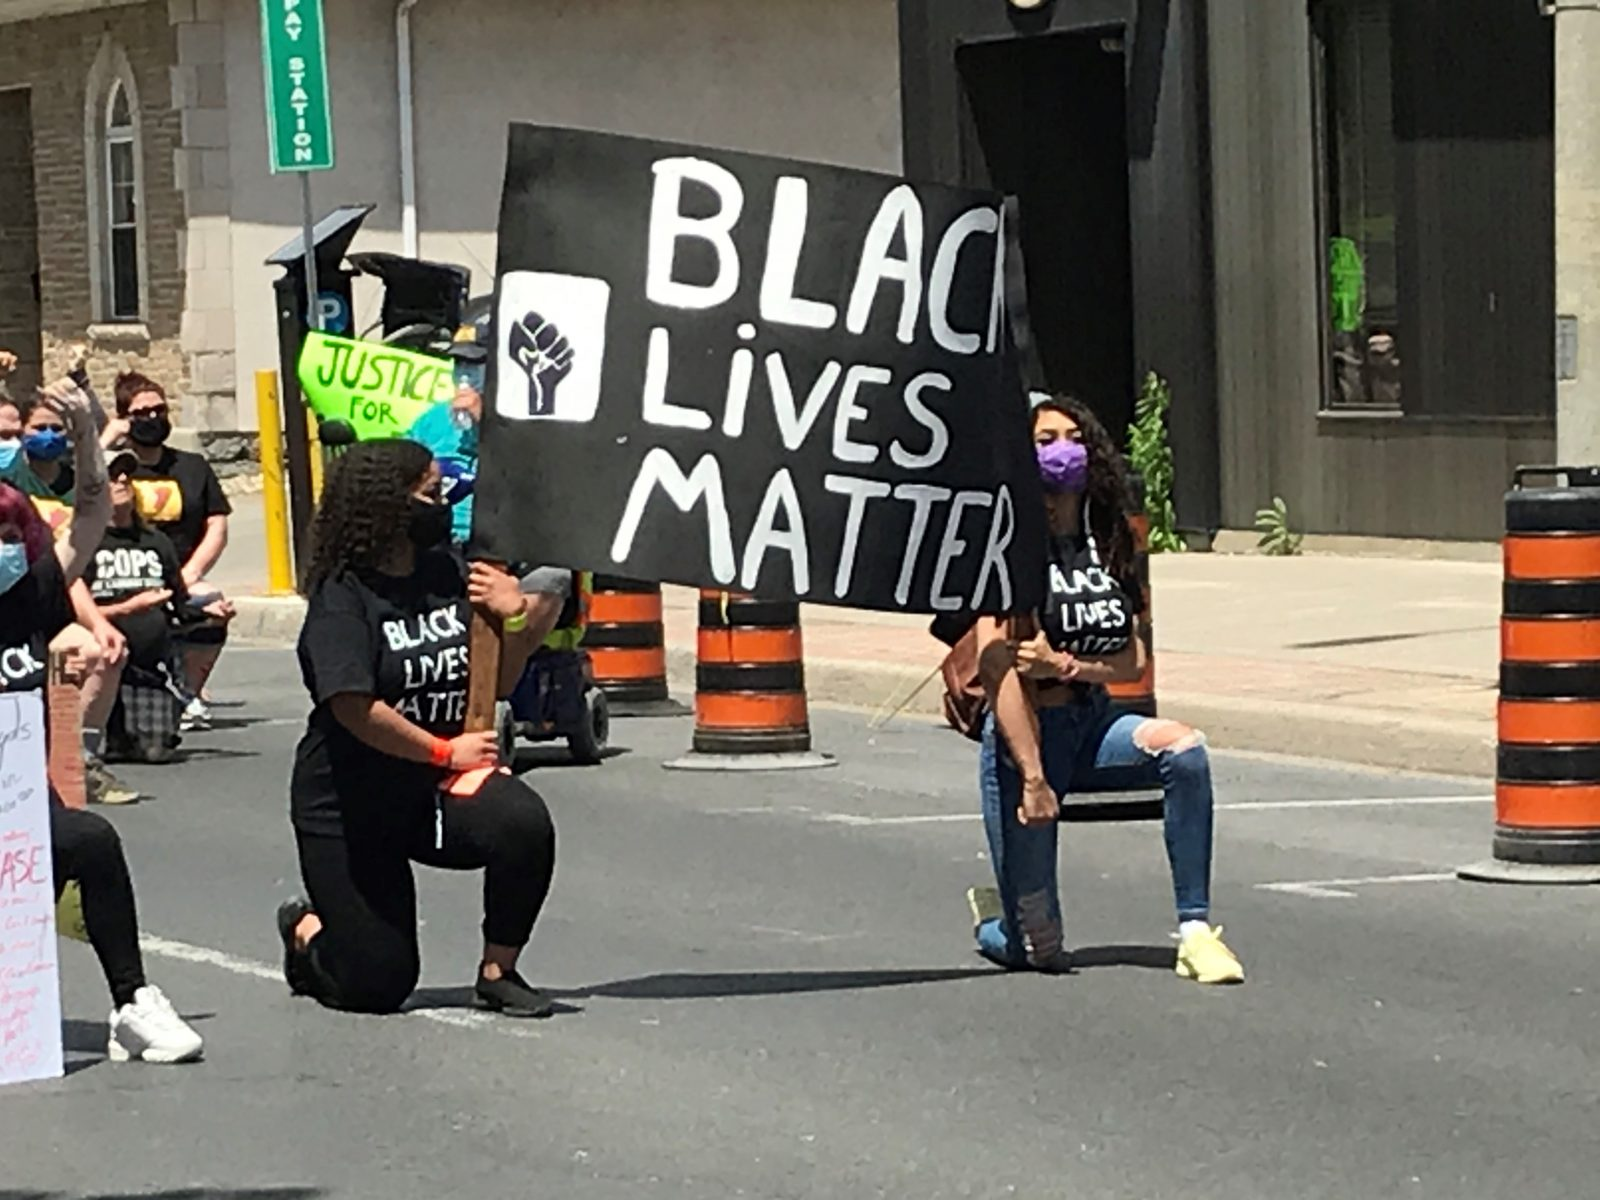 OPINION: On the peaceful #BLM demonstration in Cornwall